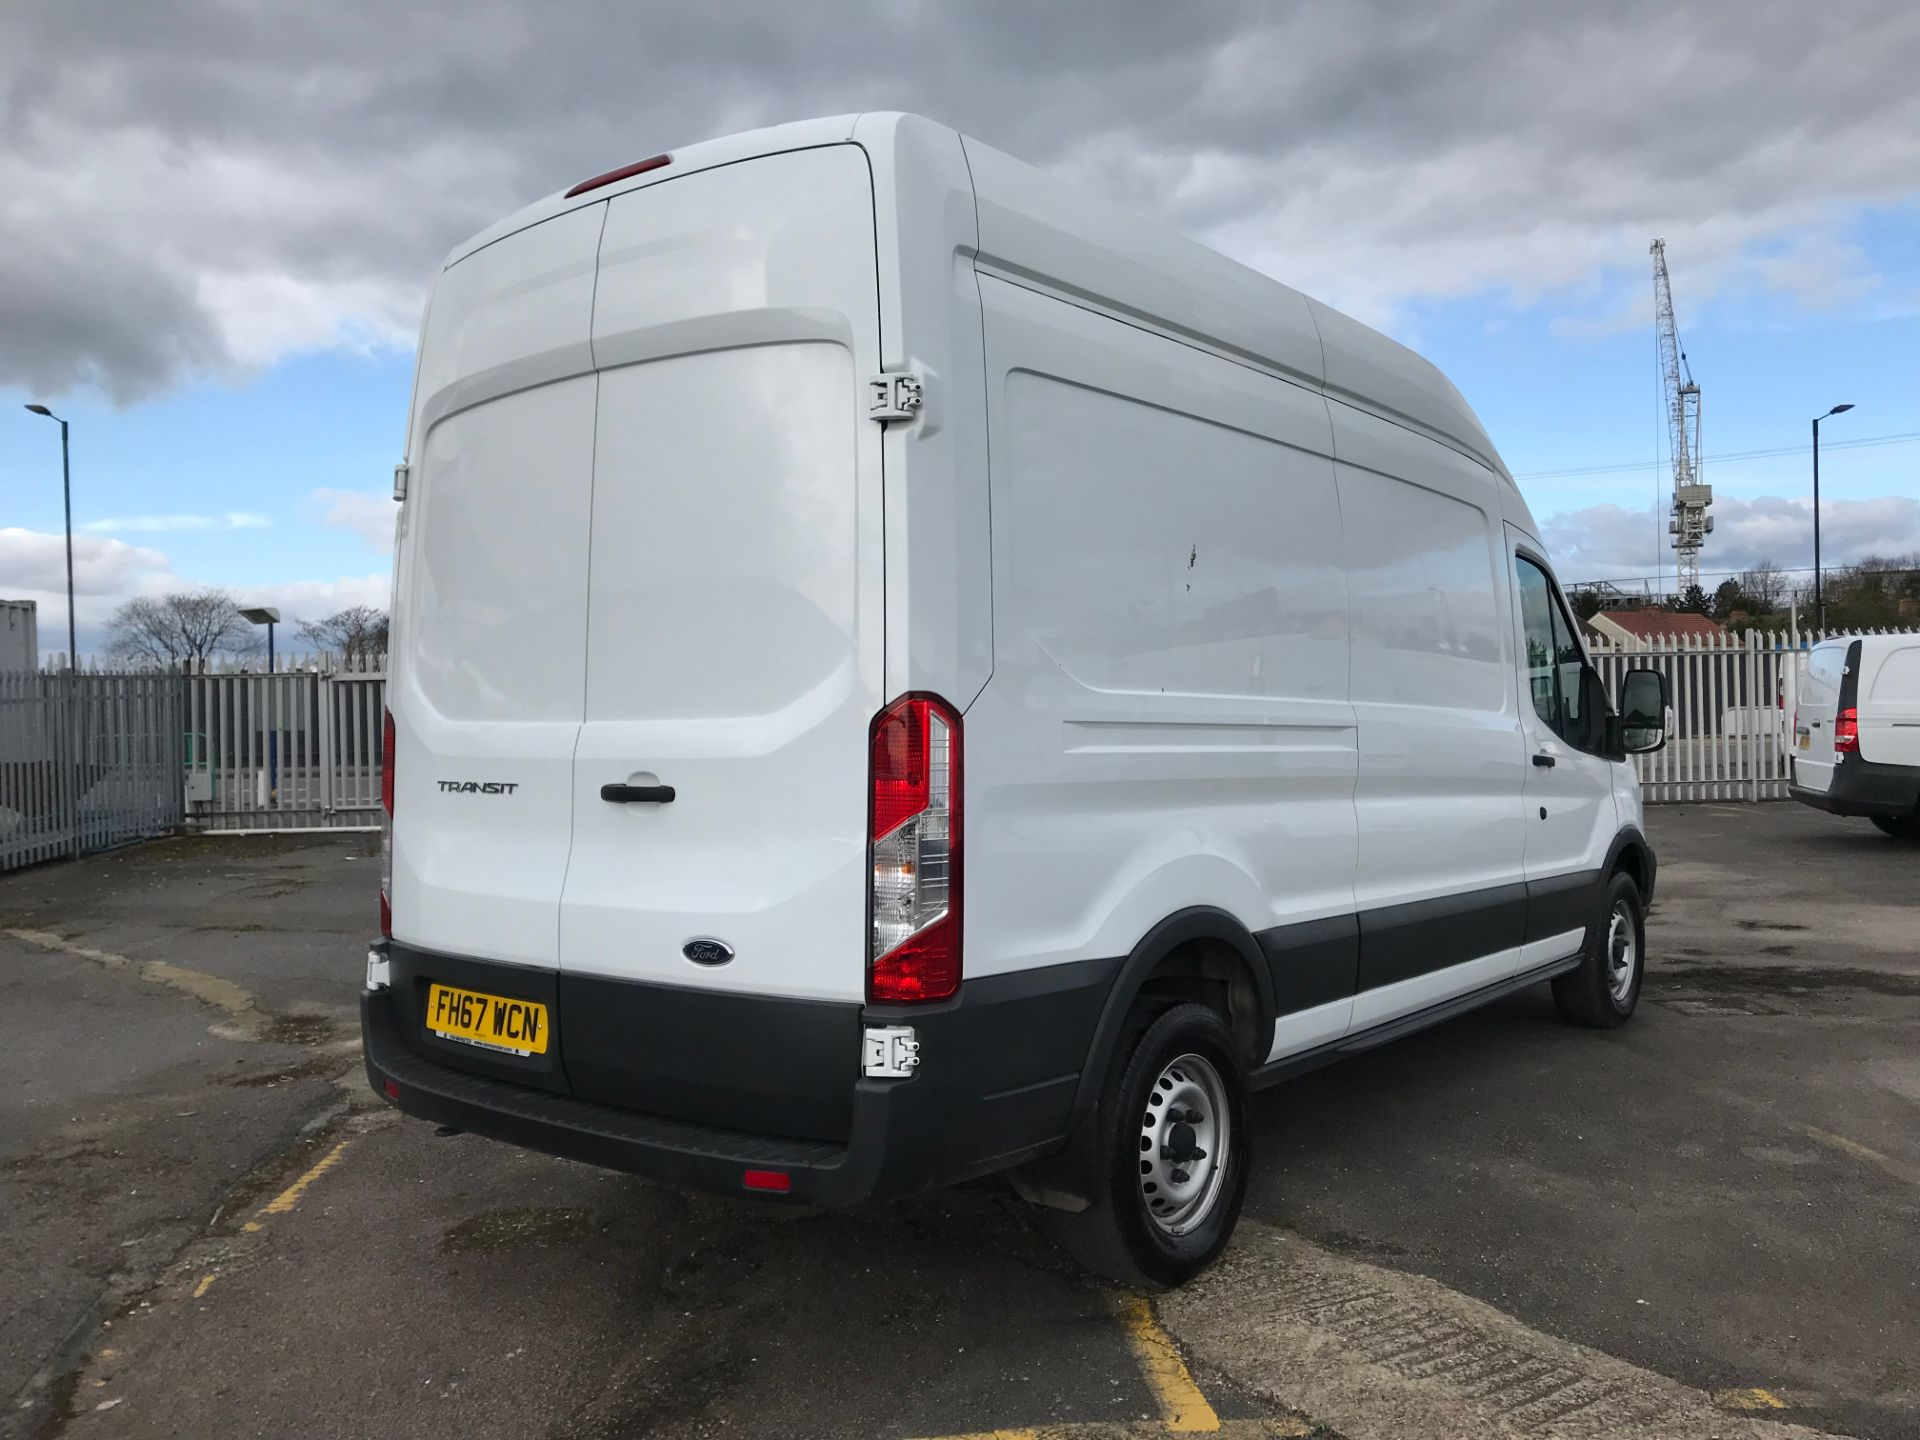 2018 Ford Transit 2.0 Tdci 130Ps H3 Van (FH67WCN) Image 4